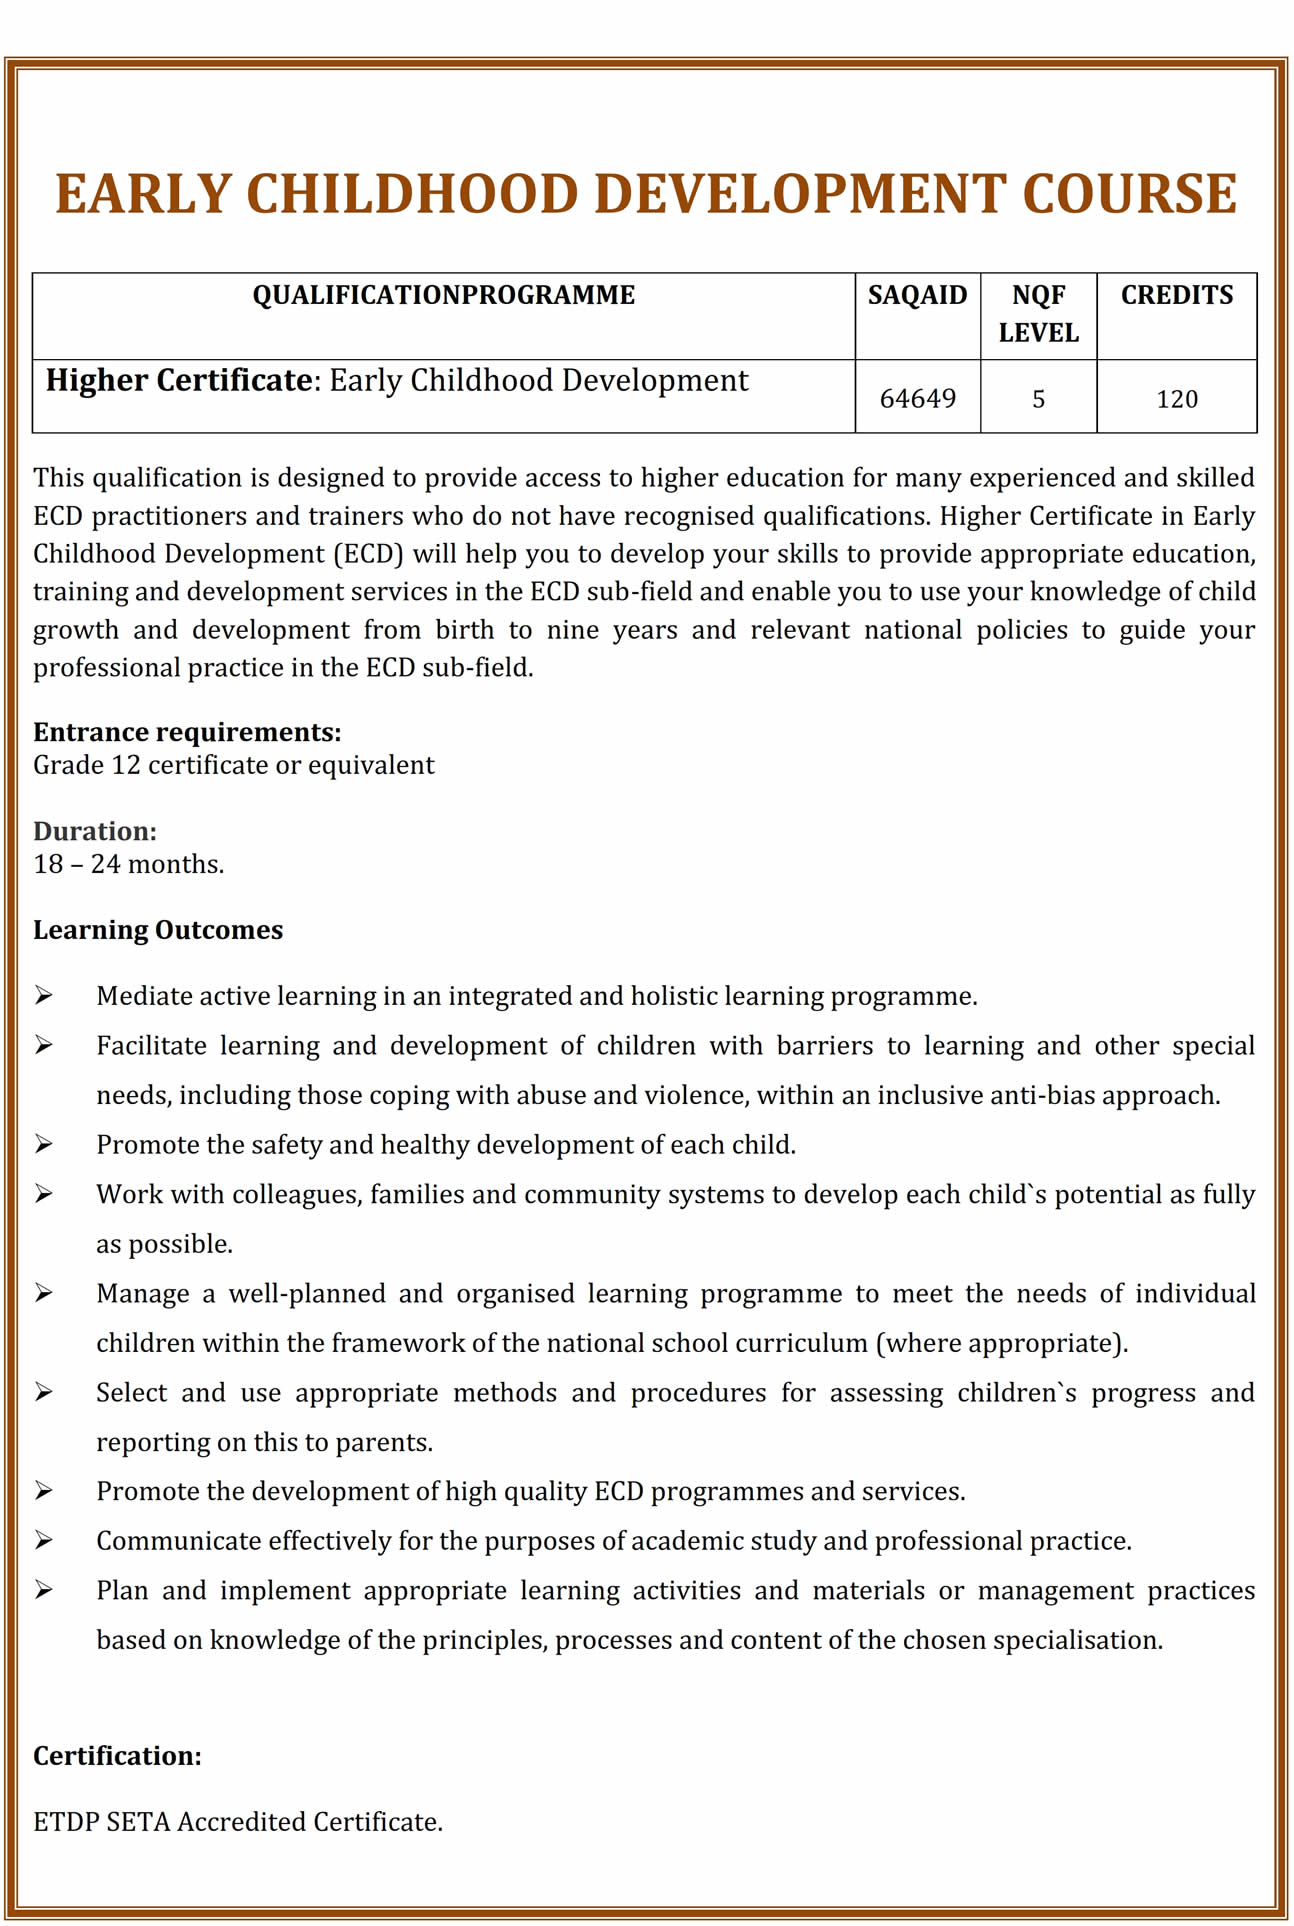 National Certificate Higher Certificate Early Childhood Development